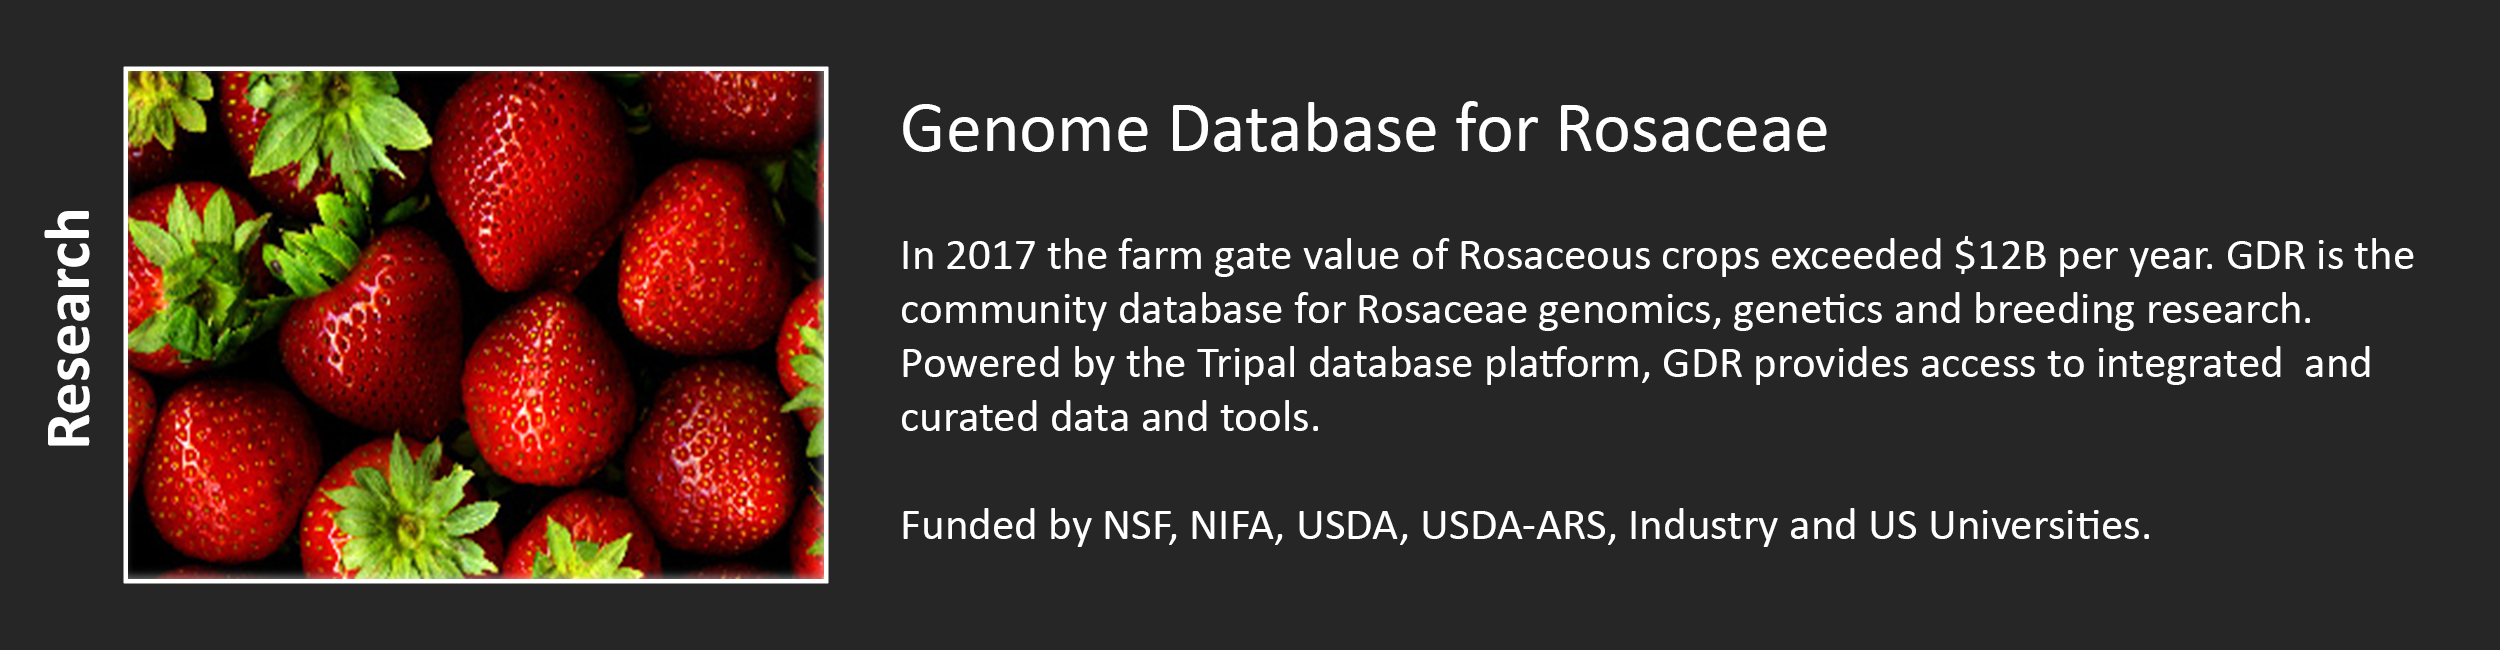 Genome Database for Rosaceae